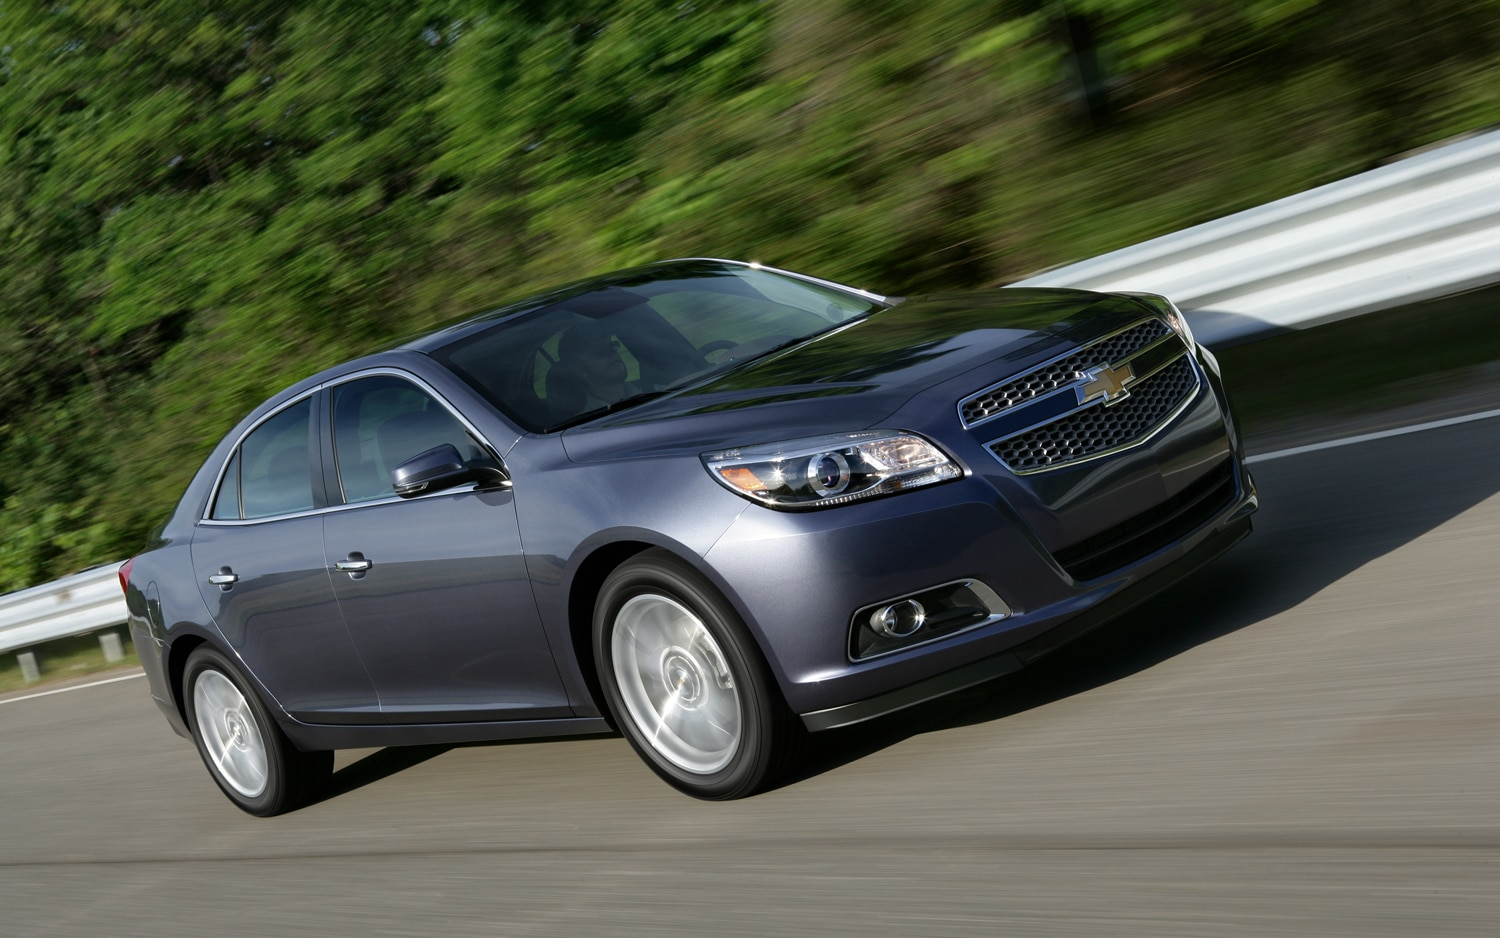 2013 Chevrolet Malibu Turbo Front Three Quarter In Motion 21